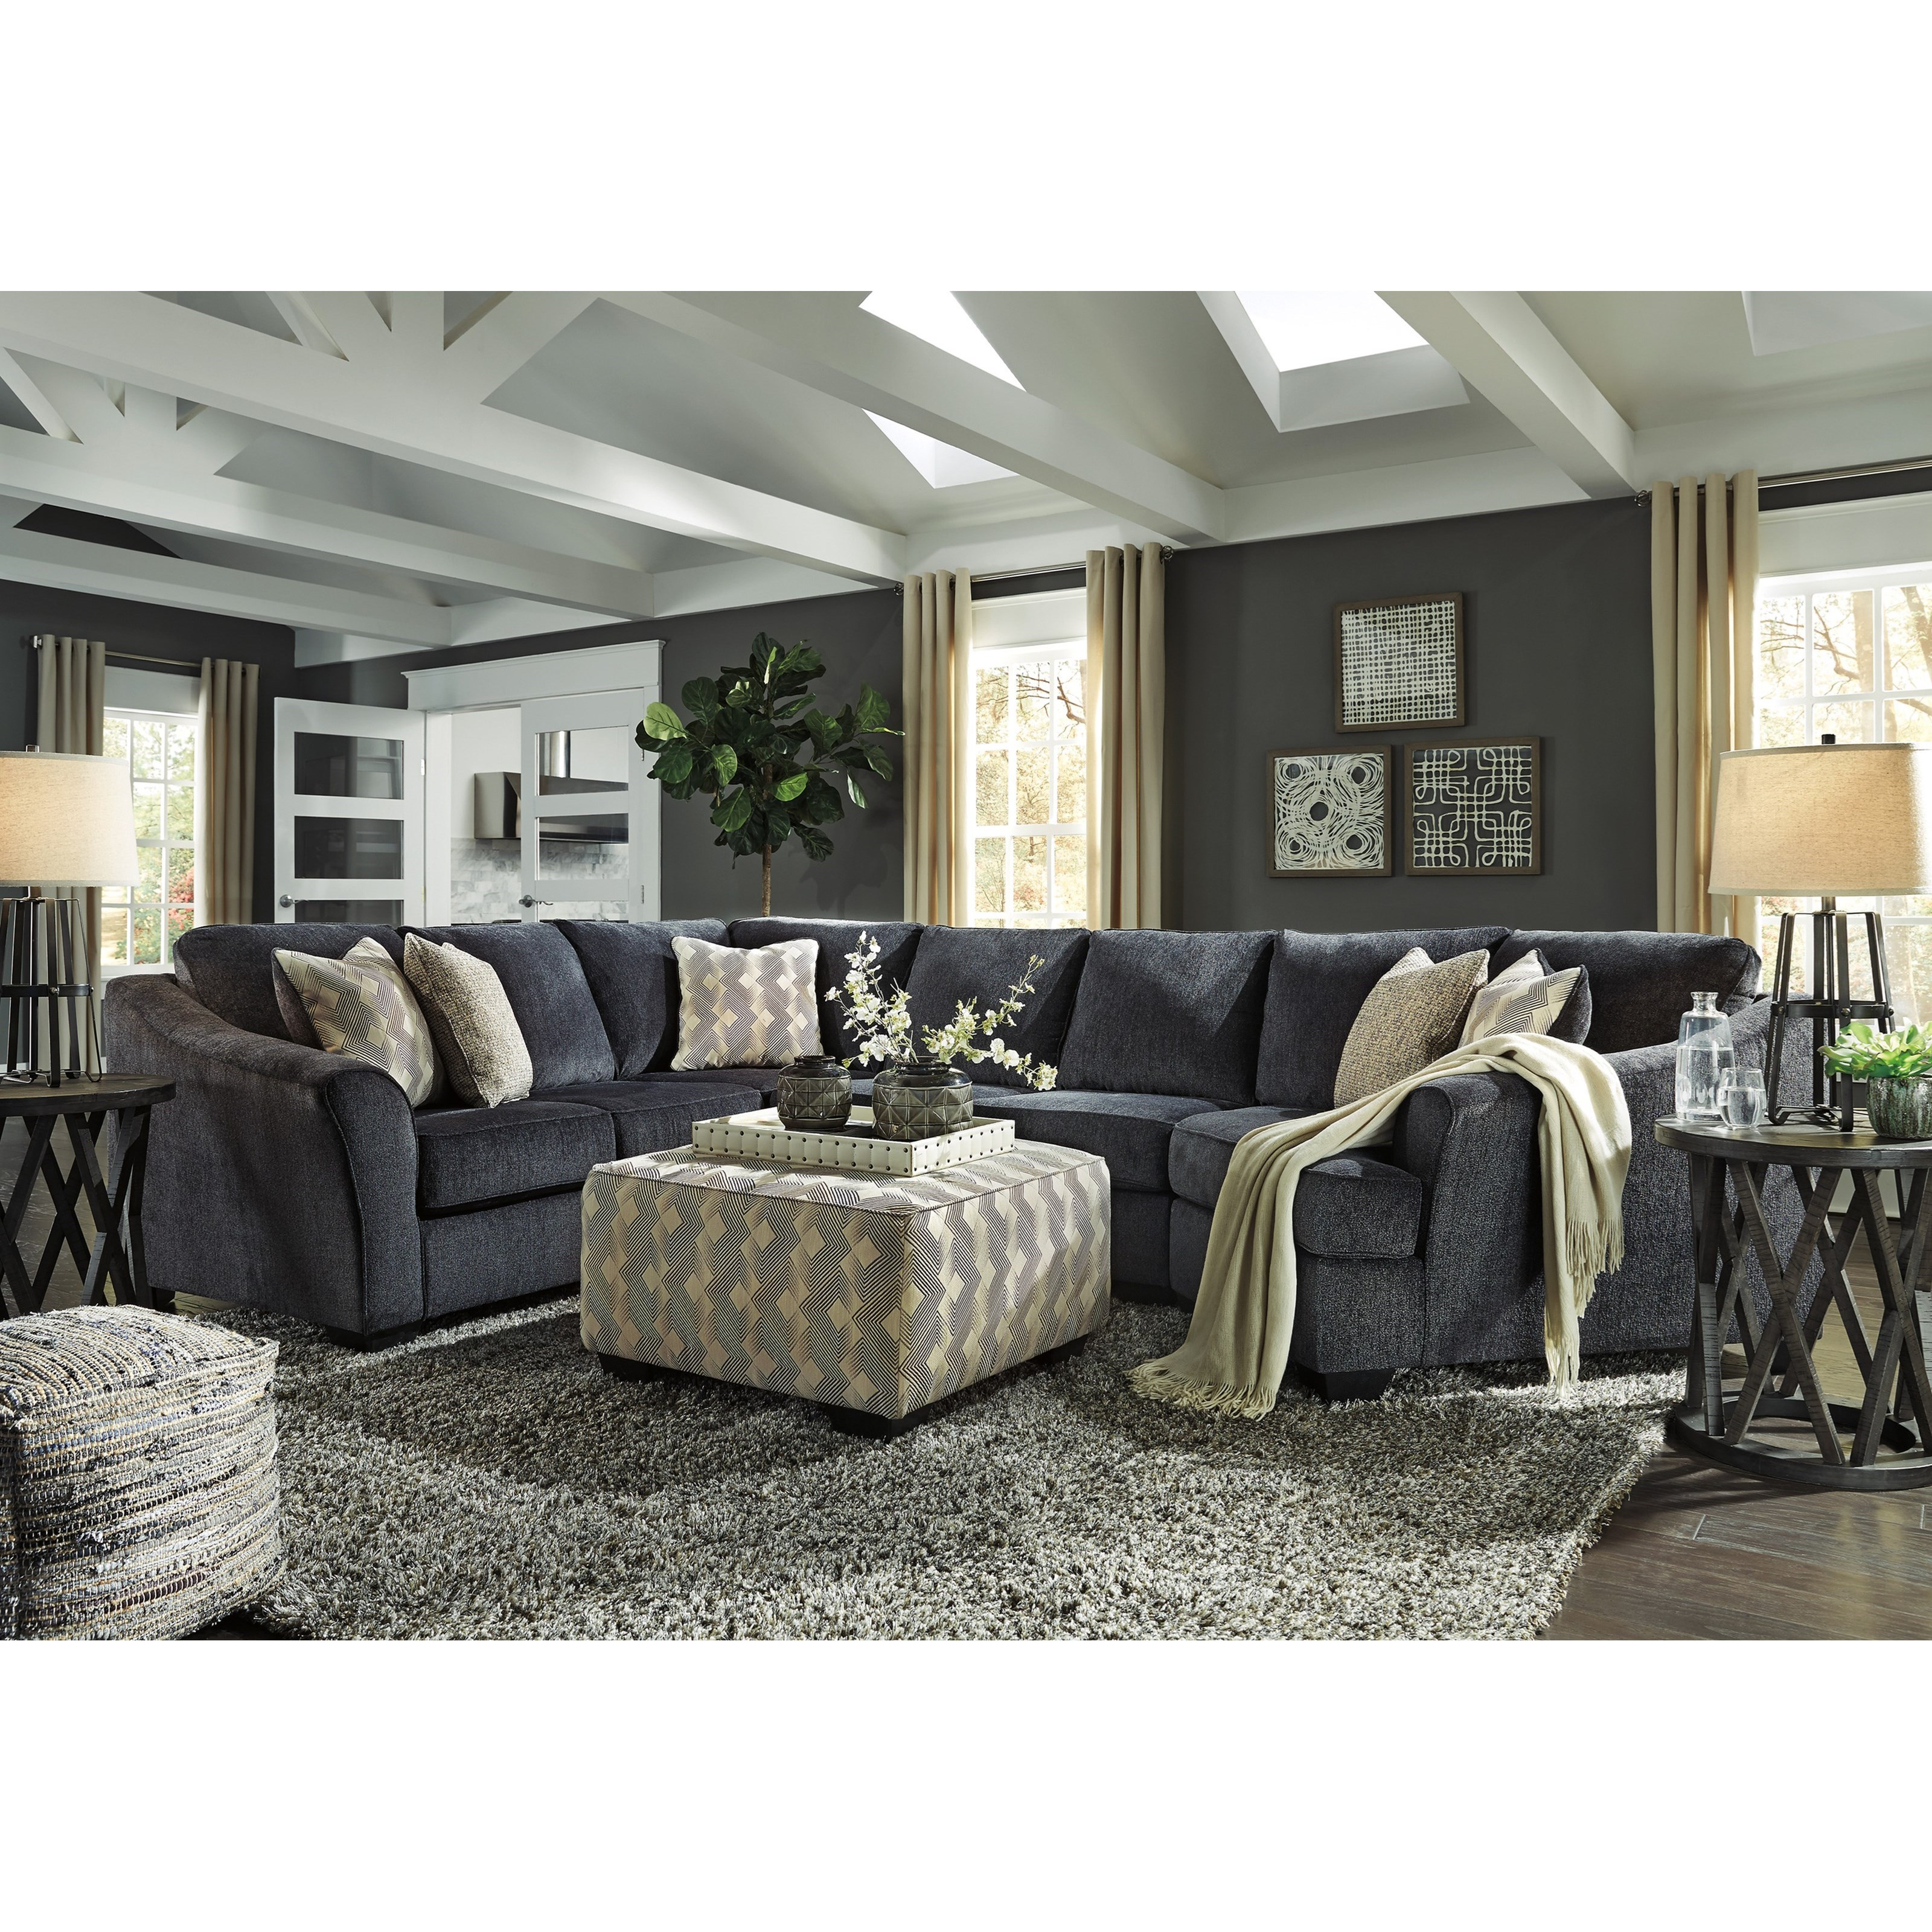 Eltmann 4 Piece Sectional With Chaise: Signature Design By Ashley Eltmann 3-Piece Sectional With